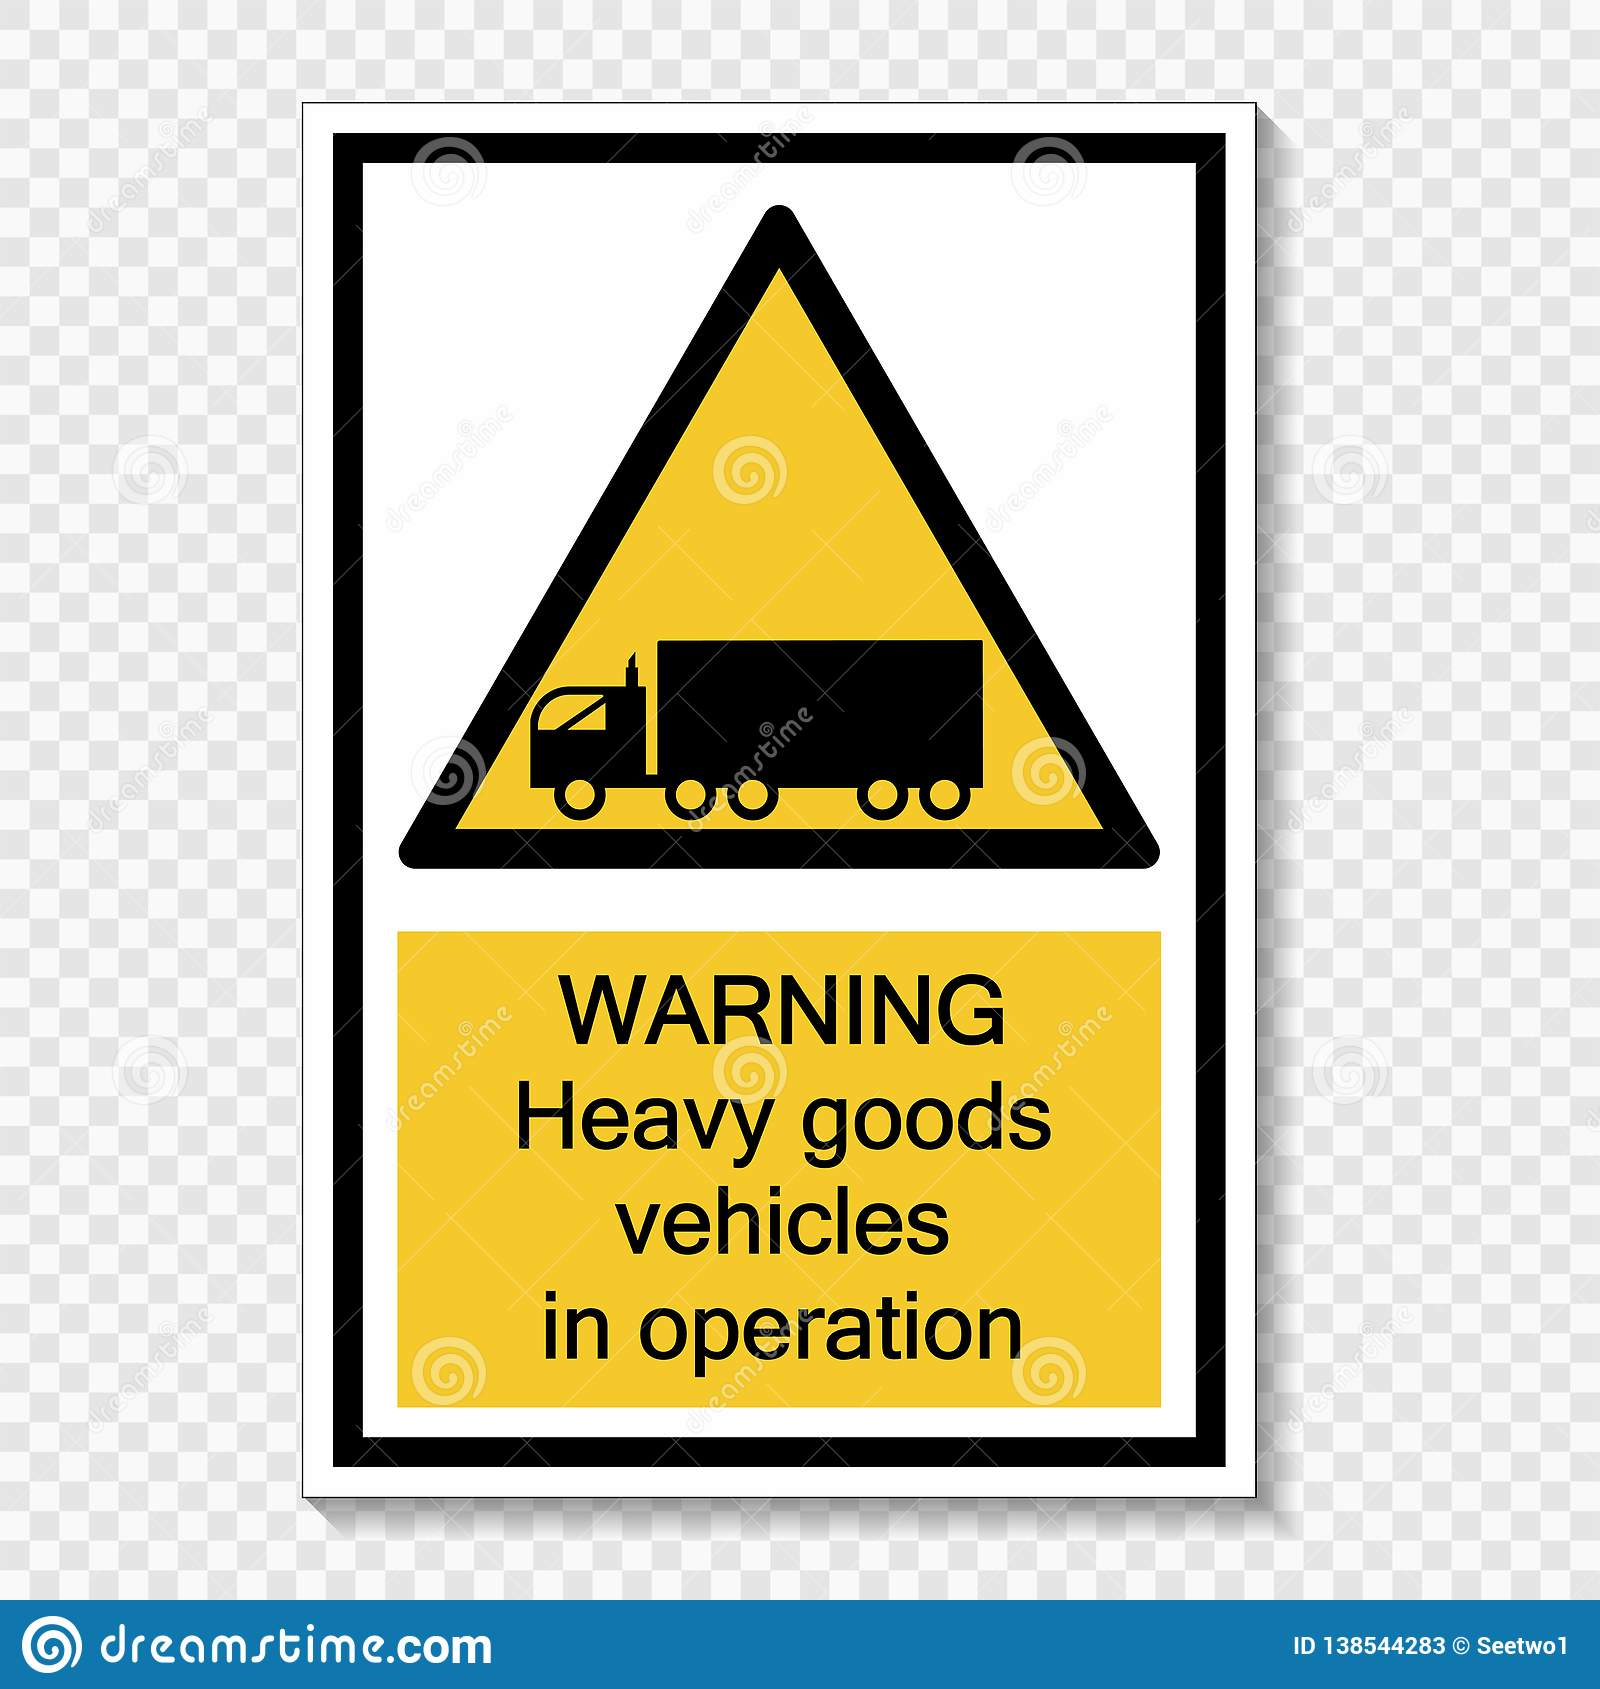 Symbol Warning heavy goods vehicles in operation sign label on transparent background